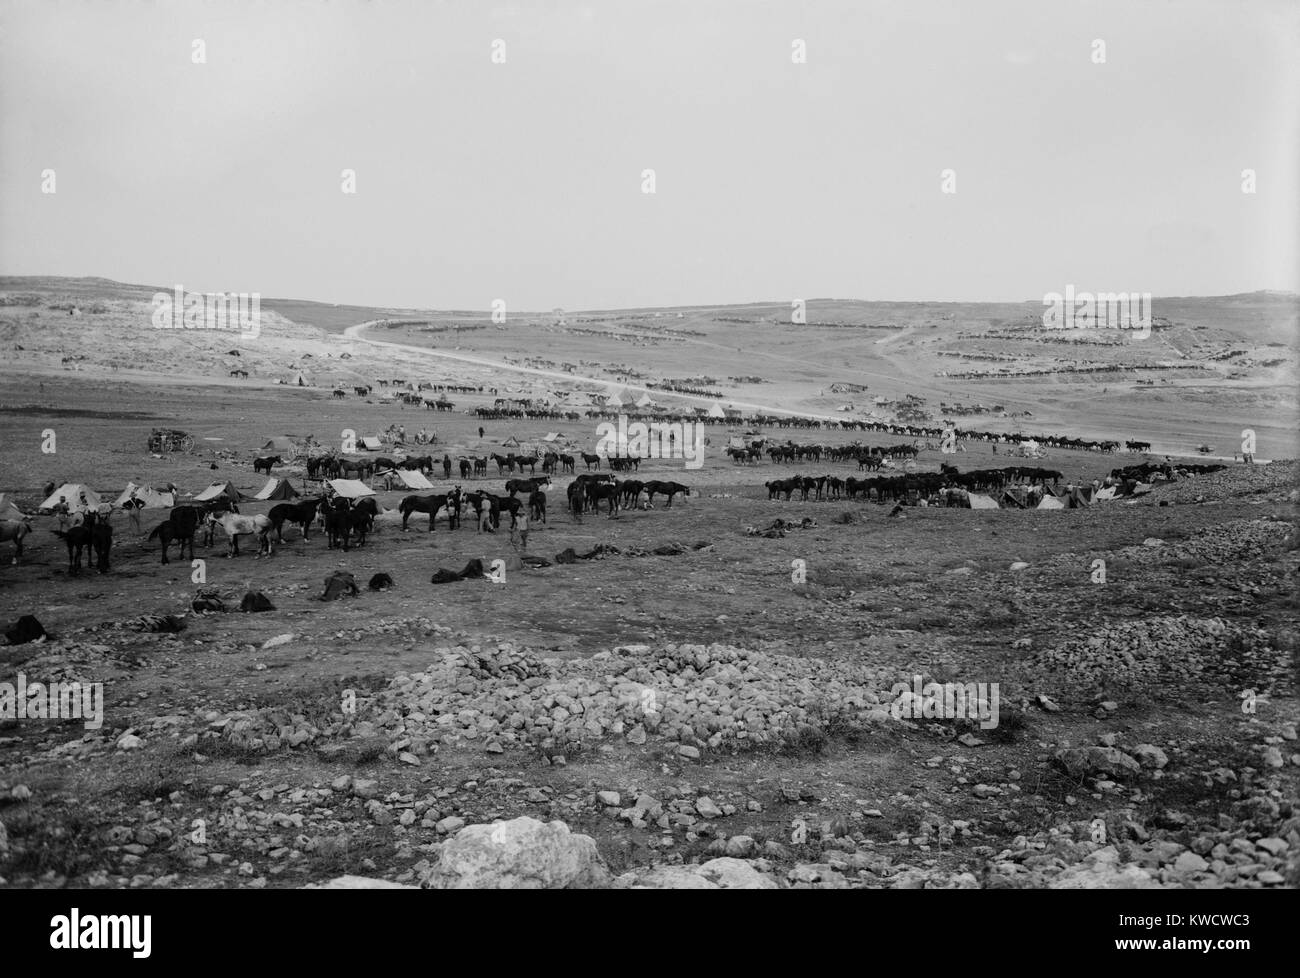 World War 1 in the Middle East. Australian light horse cavalry at the Tell el-Ful battlefield, east of the Nablus - Stock Image